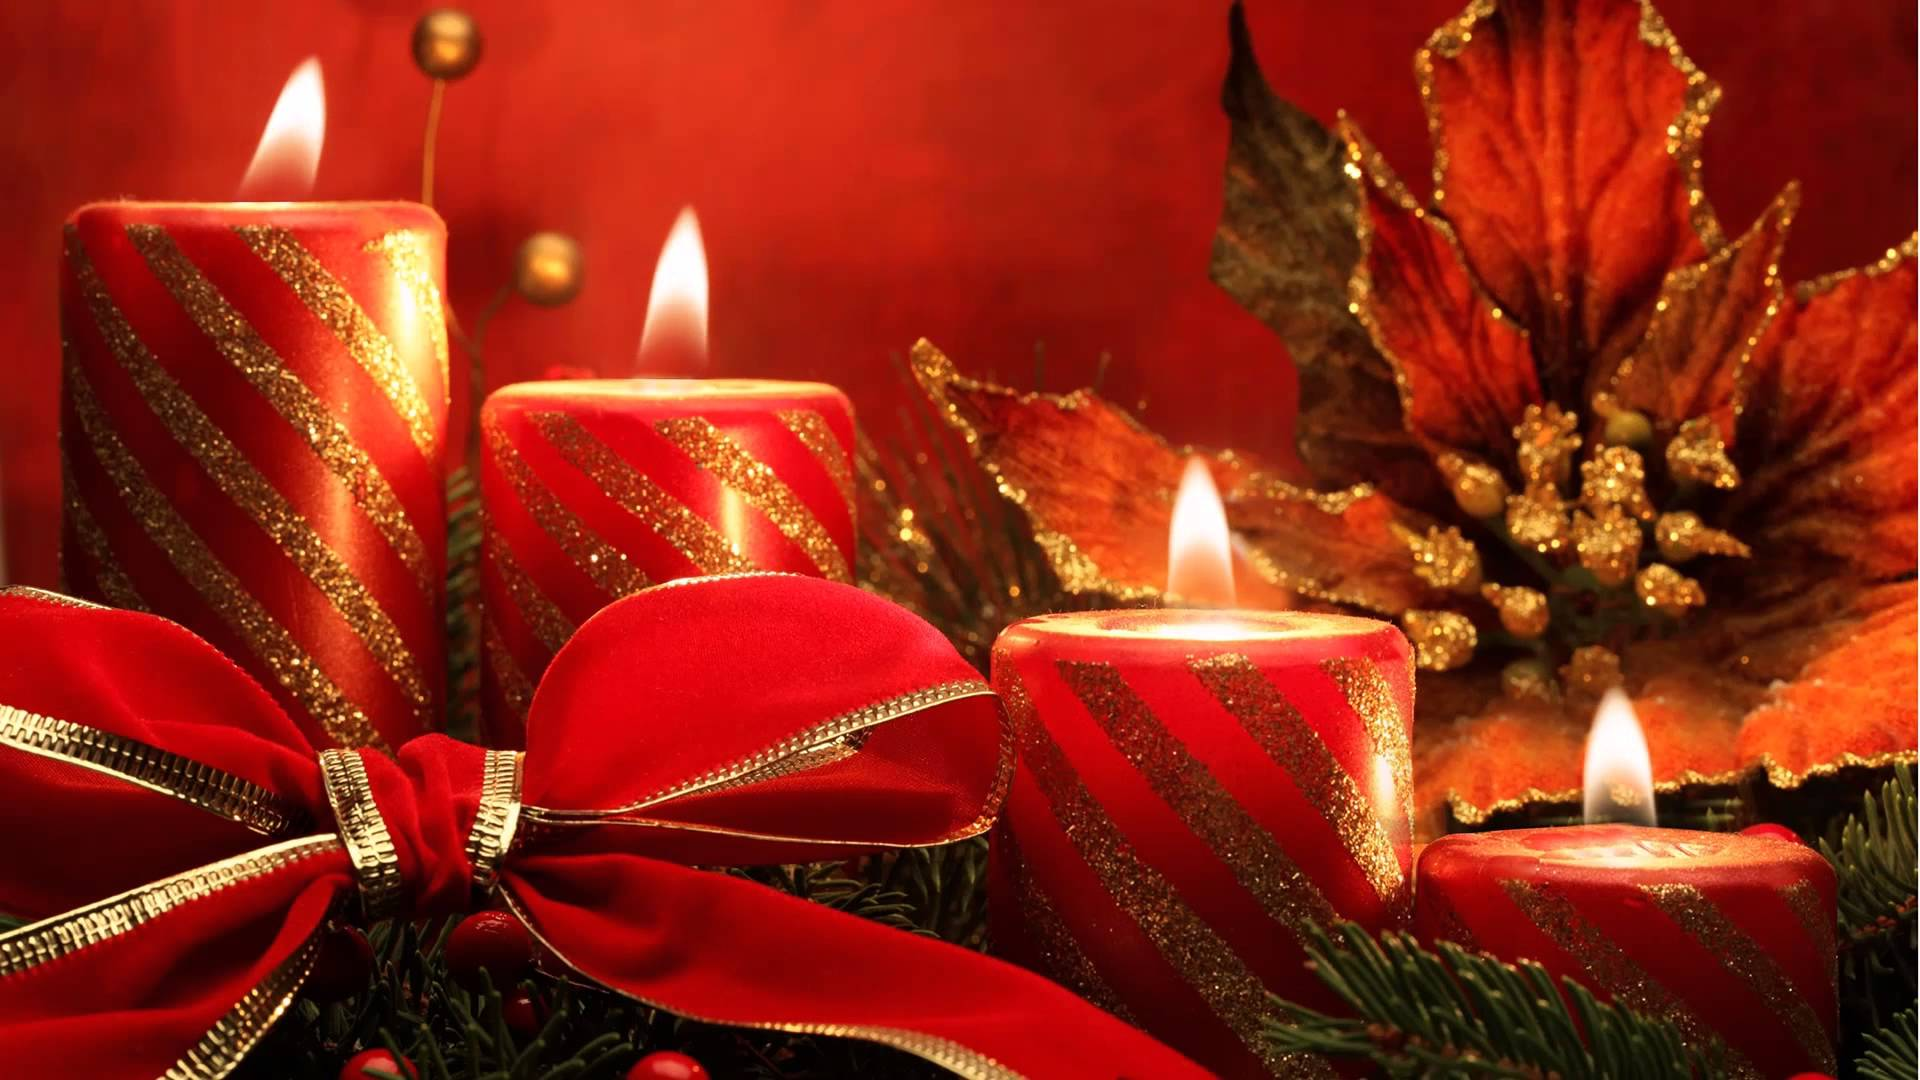 Christmas magic - wonderful burning candles for Christmas - YouTube